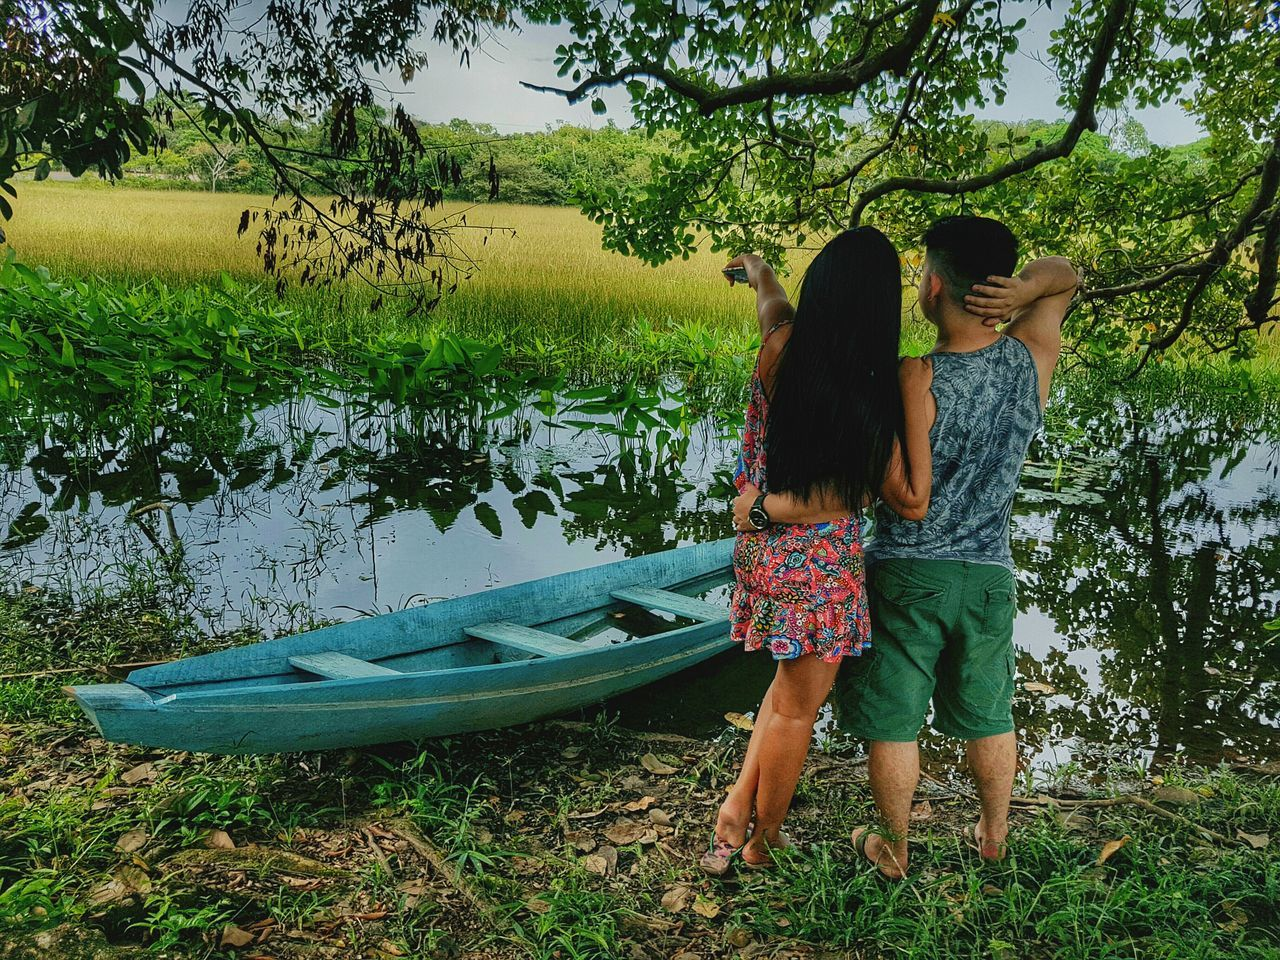 Two People Day Standing Women Outdoors Tree Lifestyles Real People Nature People Young Women Only Women Young Adult Friendship Adults Only Valentine's Day  Premium Collection Getty Images Love Togetherness Bestsellers The Great Outdoors - 2017 EyeEm Awards EyeEmNewHere Amazonia Brazil Live For The Story Place Of Heart Sommergefühle EyeEm Selects 100 Days Of Summer